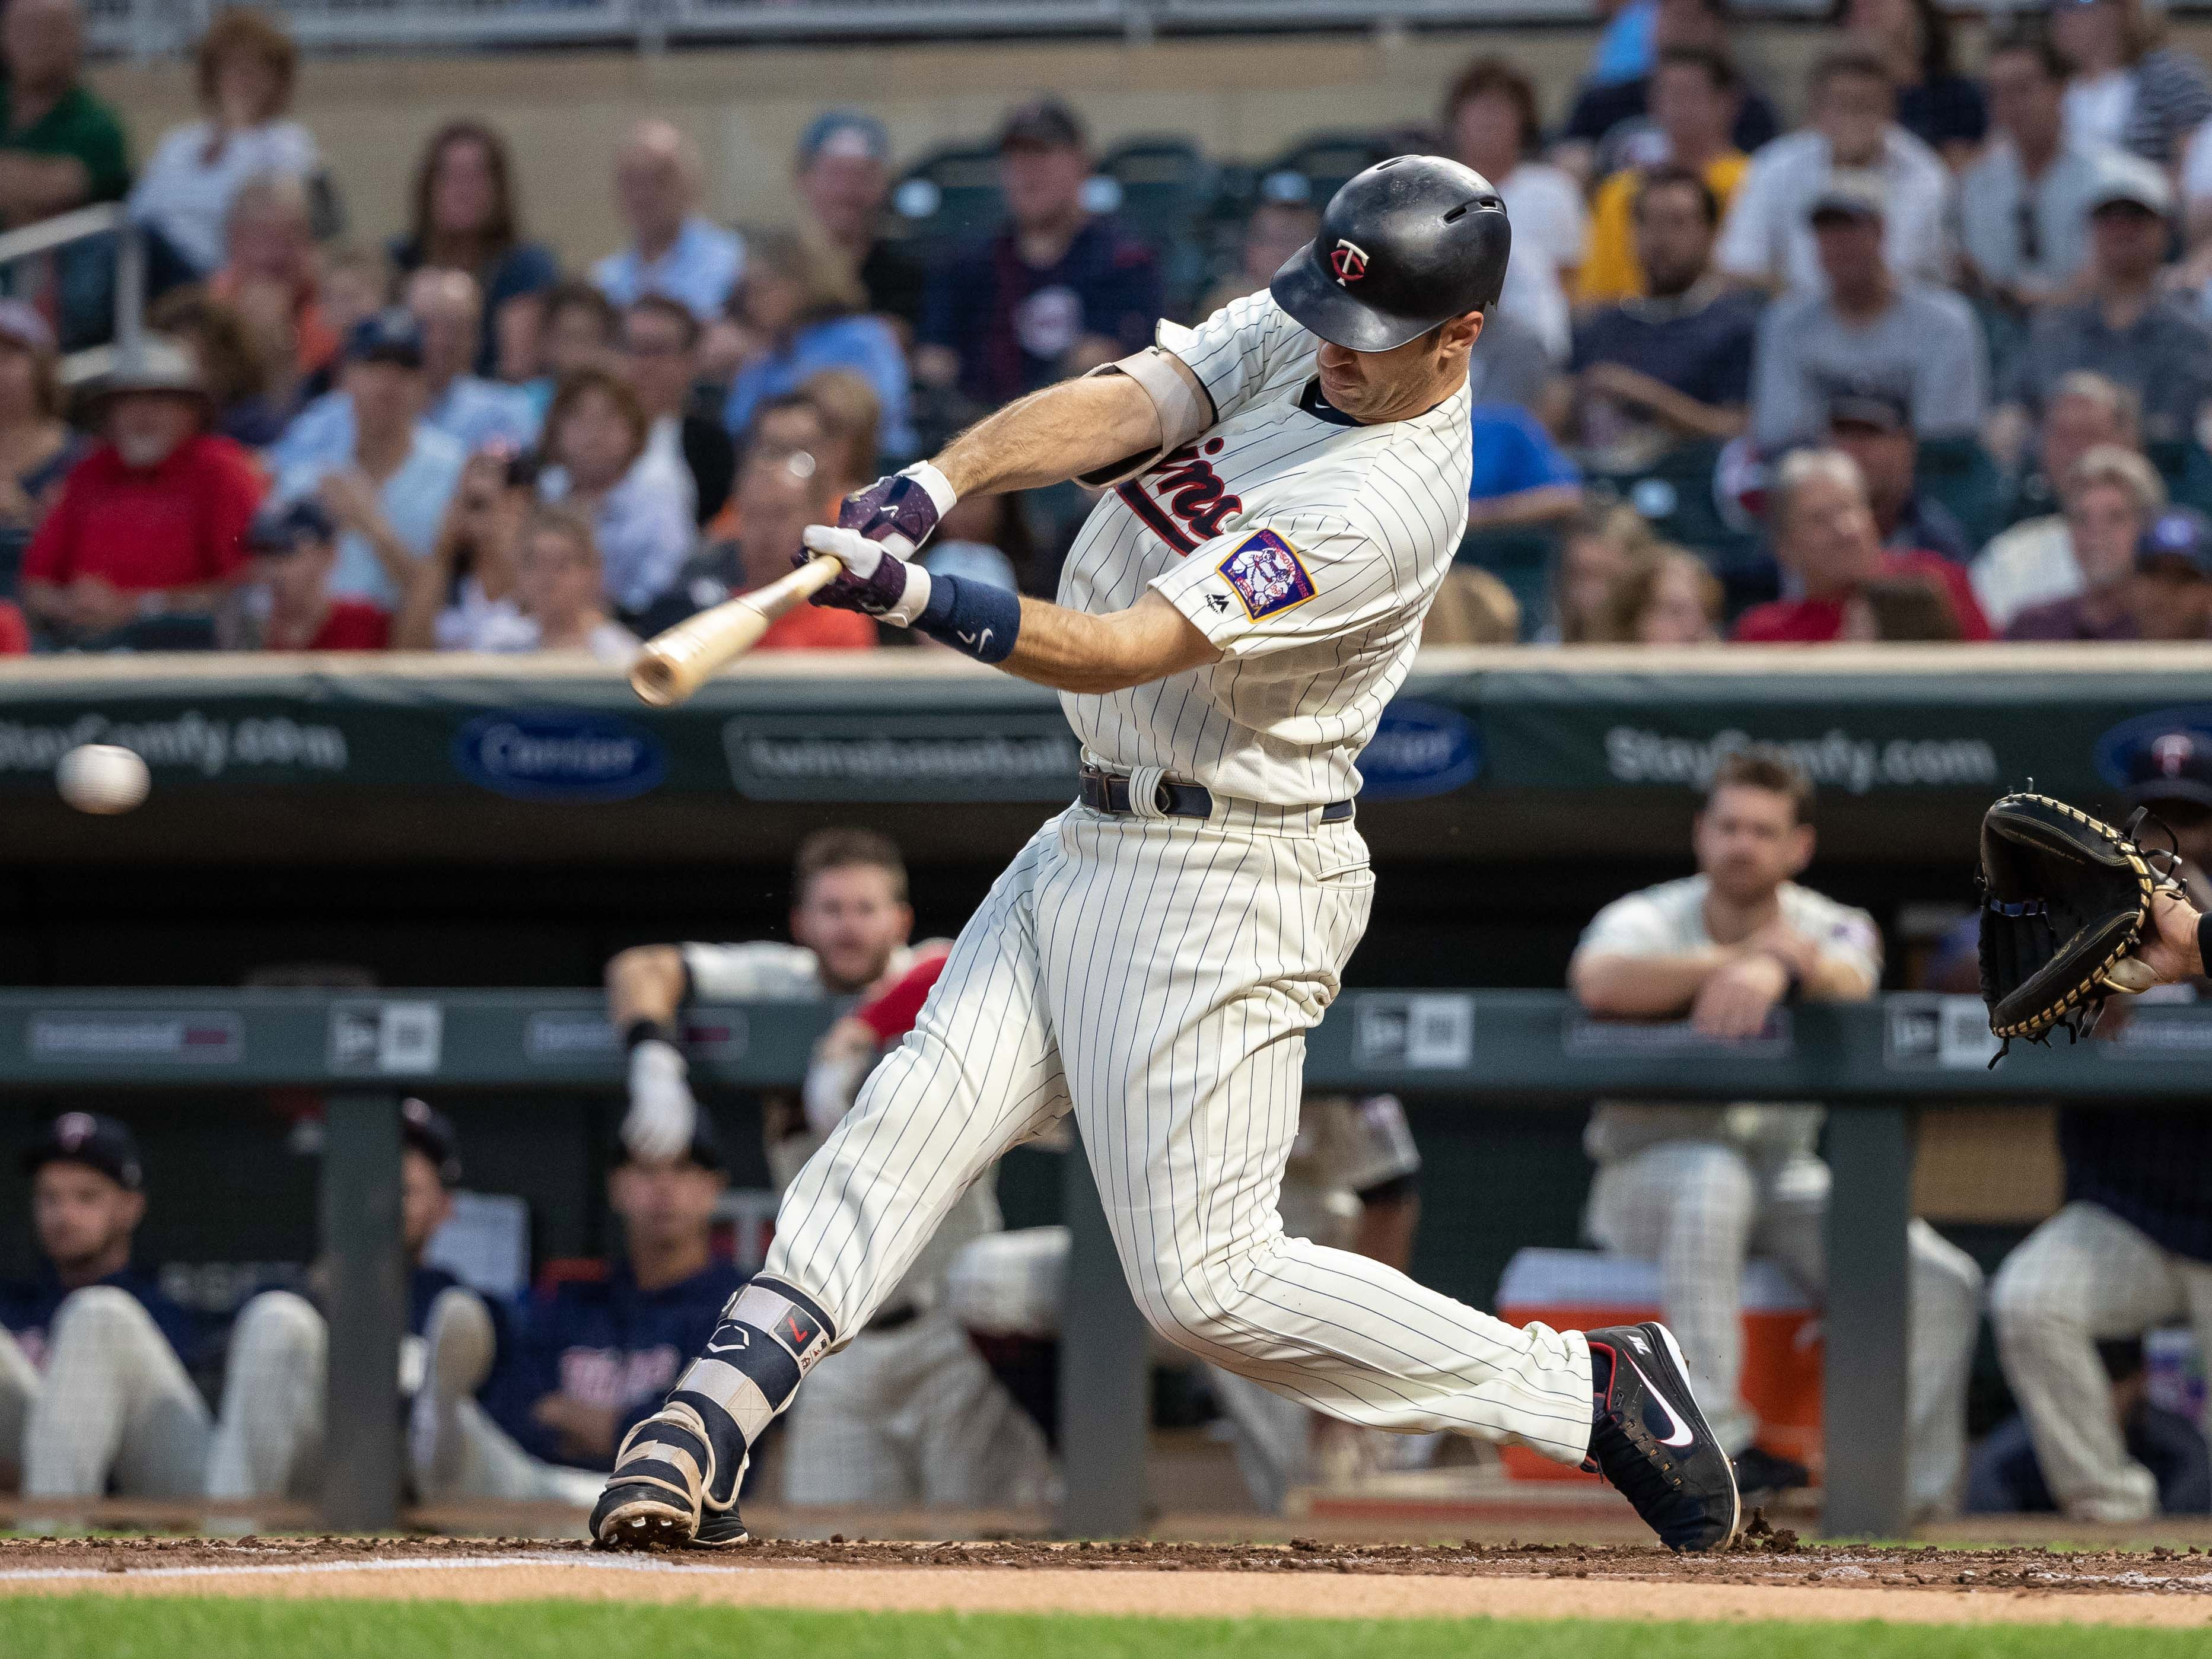 Sep 12, 2018; Minneapolis, MN, USA; Minnesota Twins first baseman Joe Mauer (7) hits a single during the first inning against the New York Yankees at Target Field.